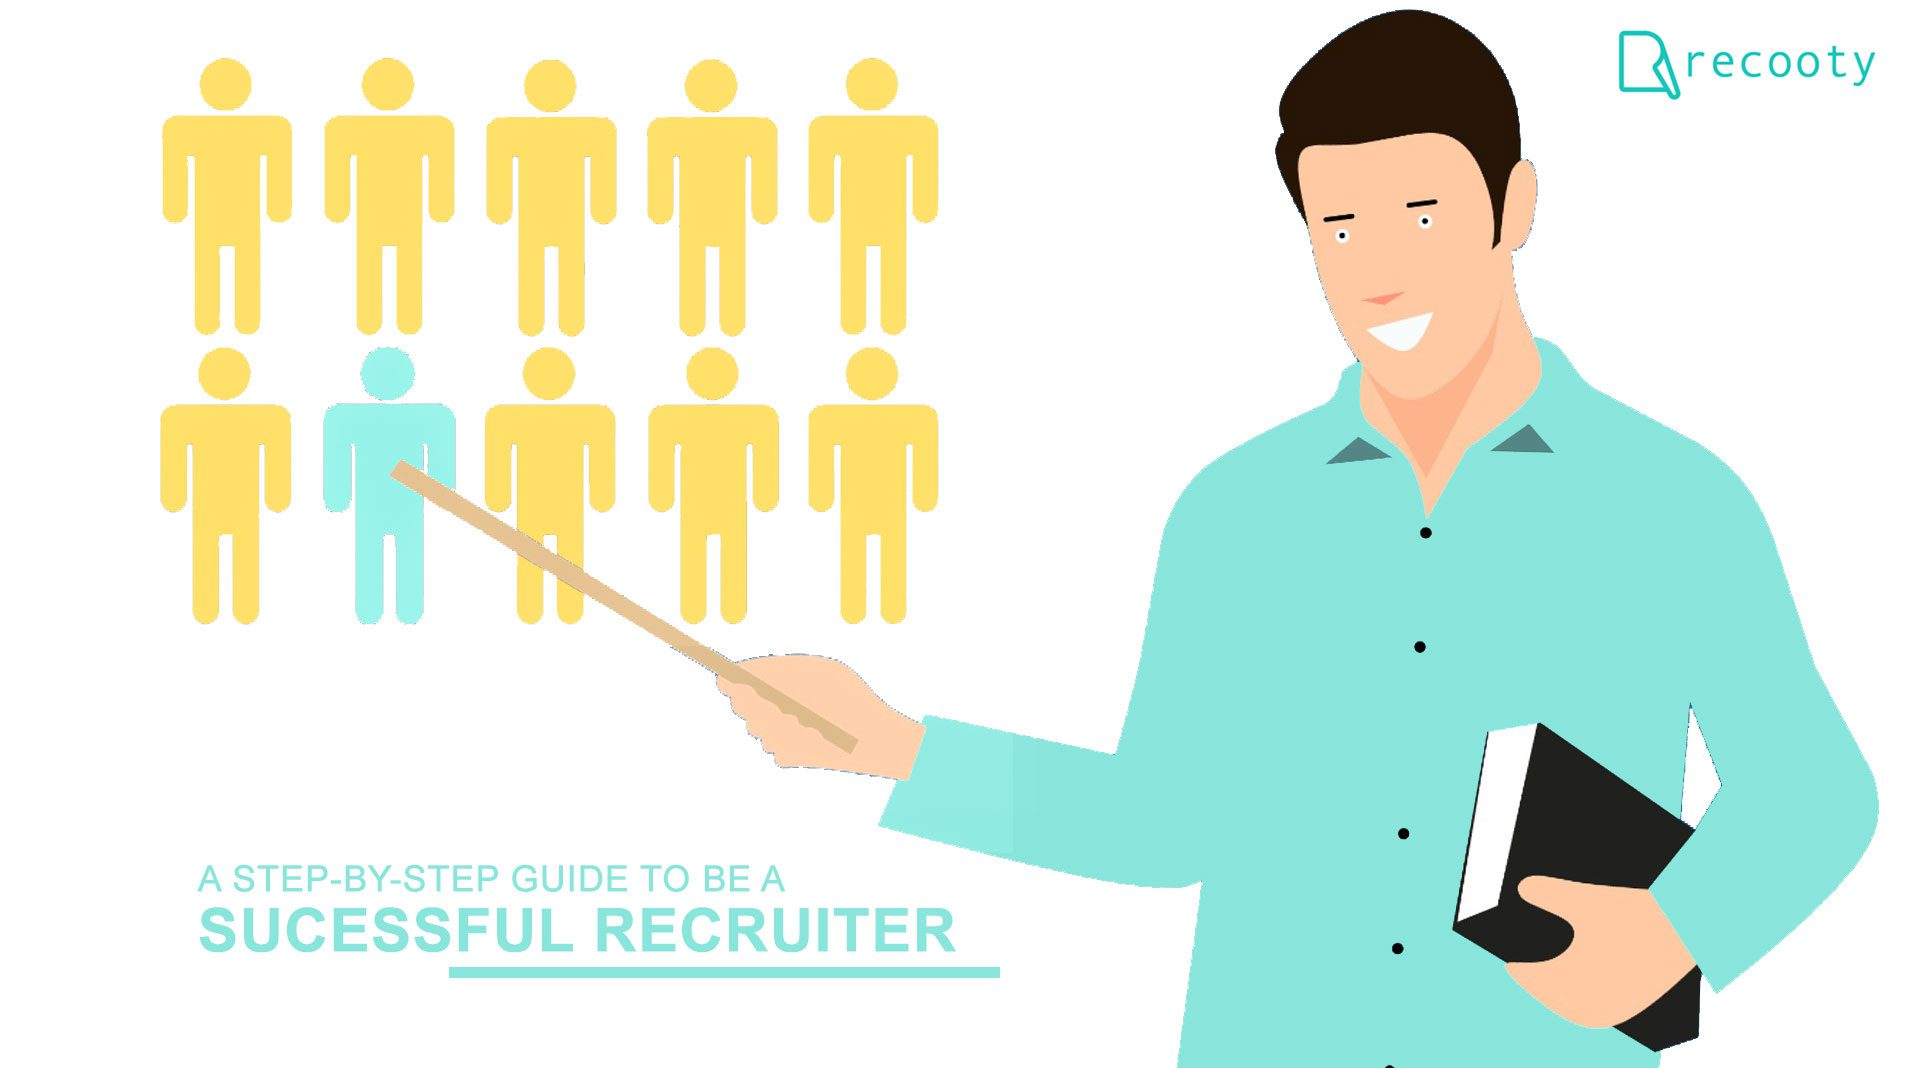 How to become a successful recruiter